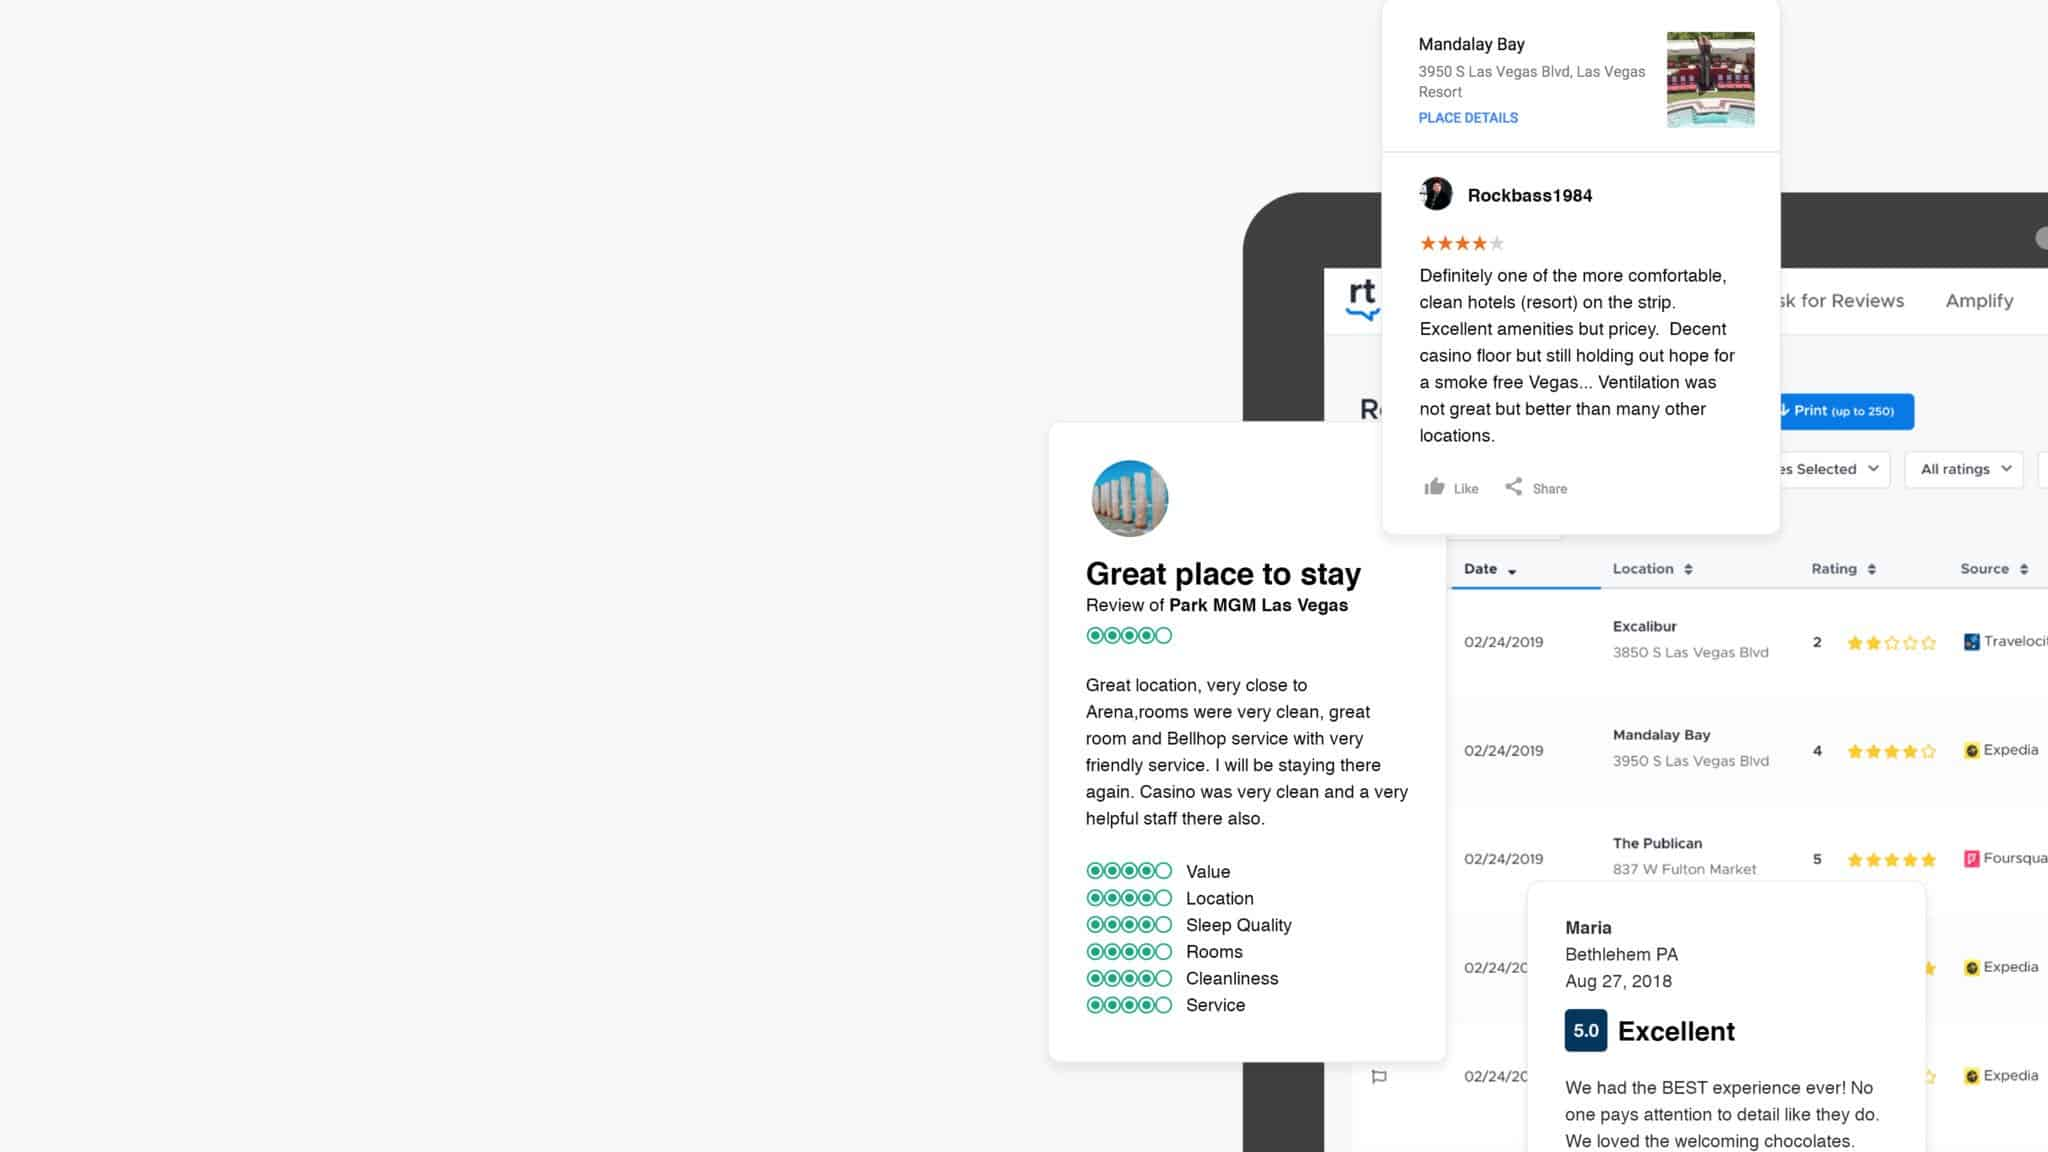 centralize your review response with ReviewTrackers